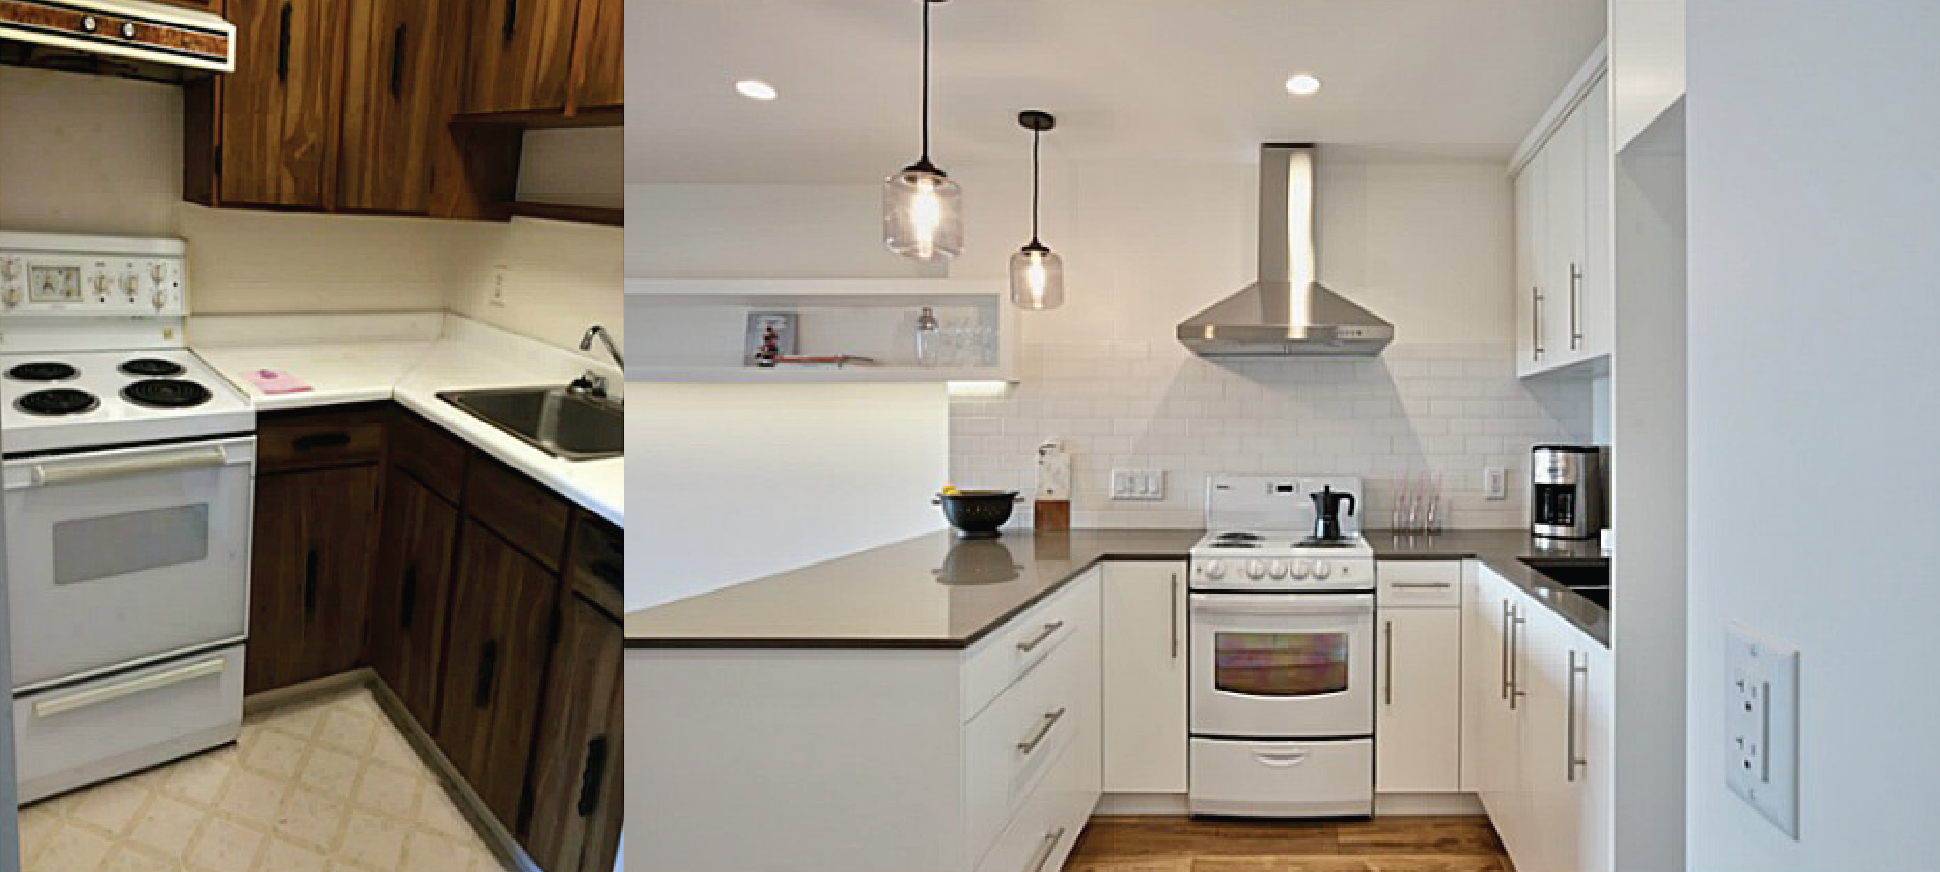 Small kitchen remodel before and after brindle before for Small kitchen remodel